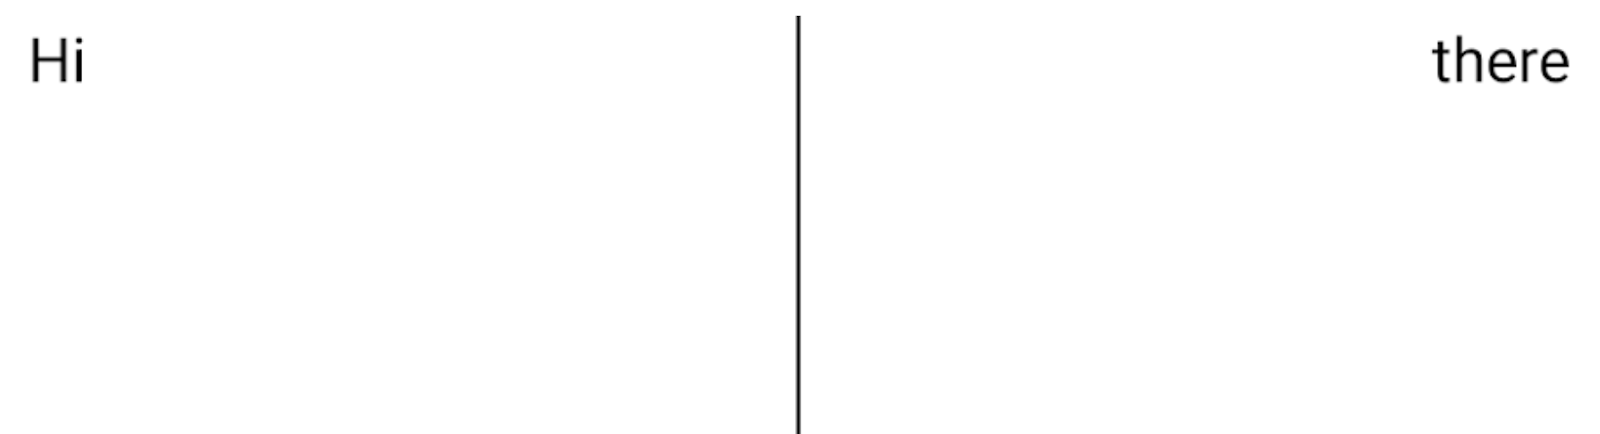 d61f179394ded825.png